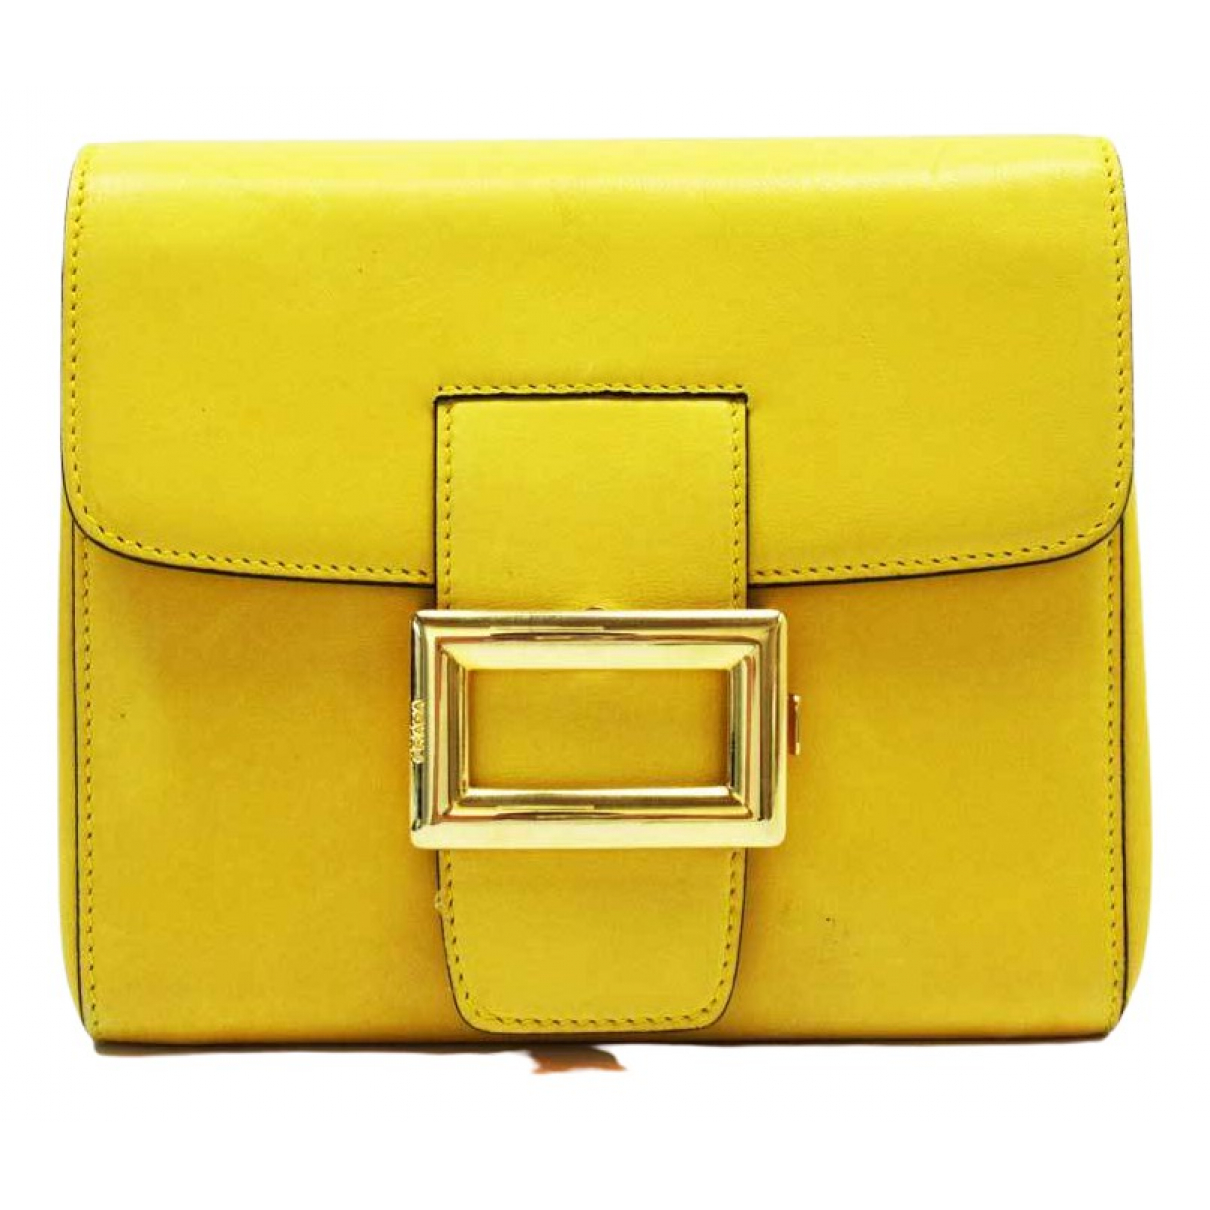 Prada \N Clutch in  Gelb Leder